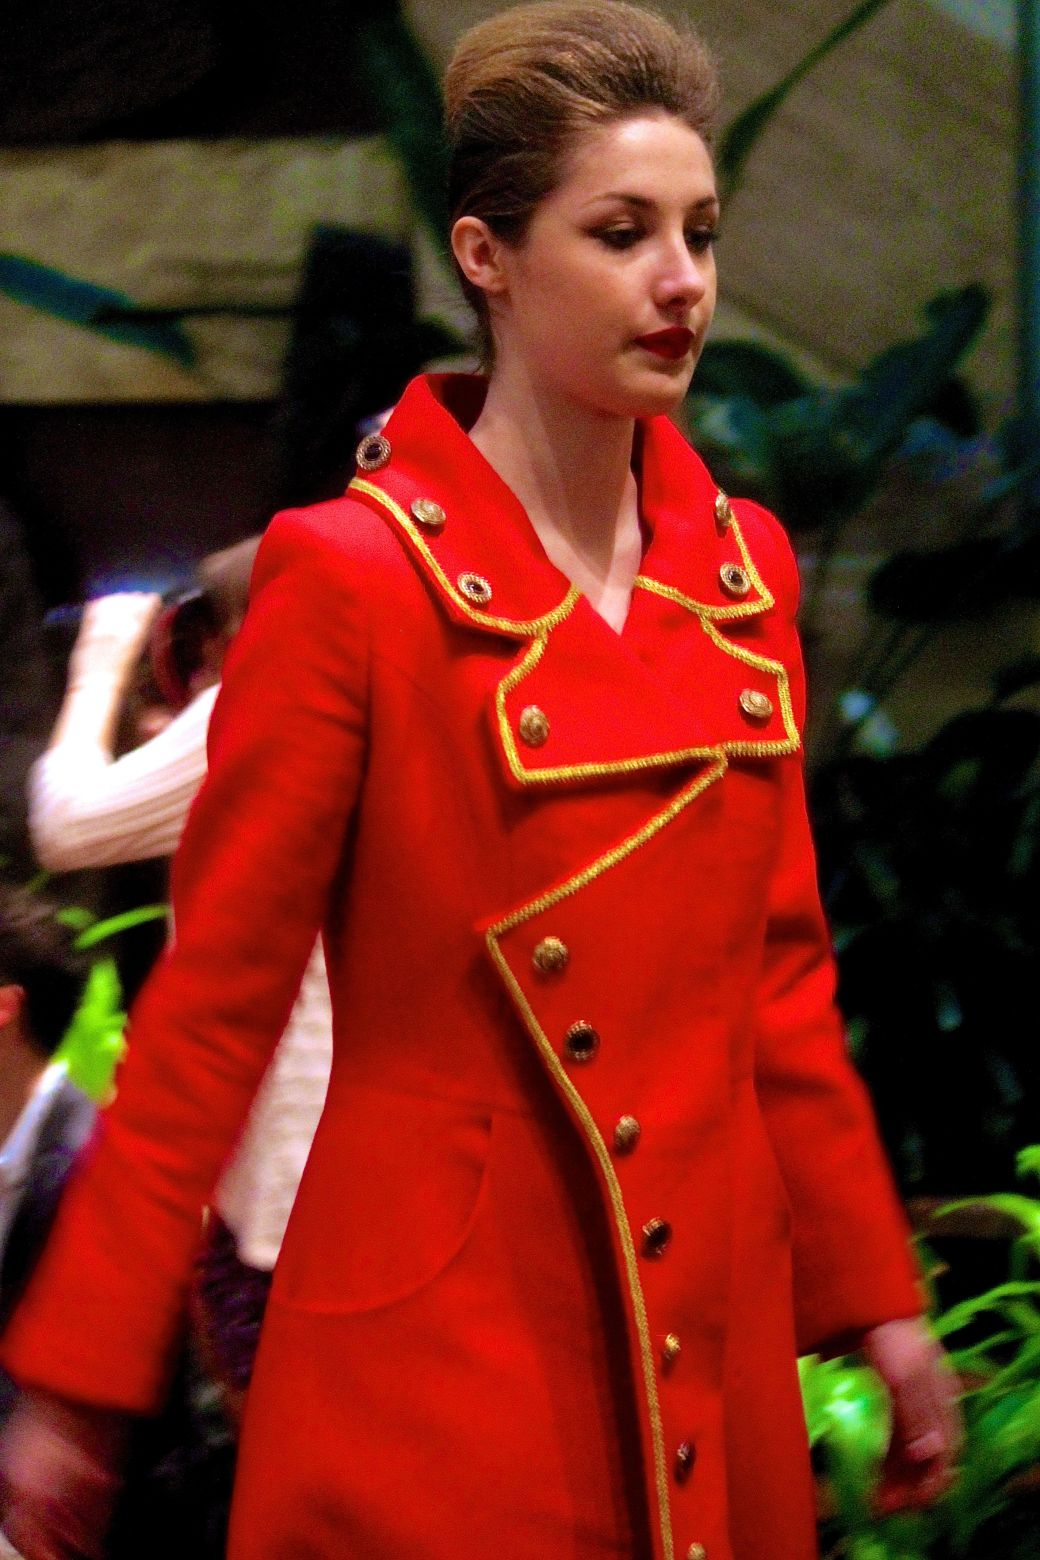 boston fashion week october 2 woman in red coat front